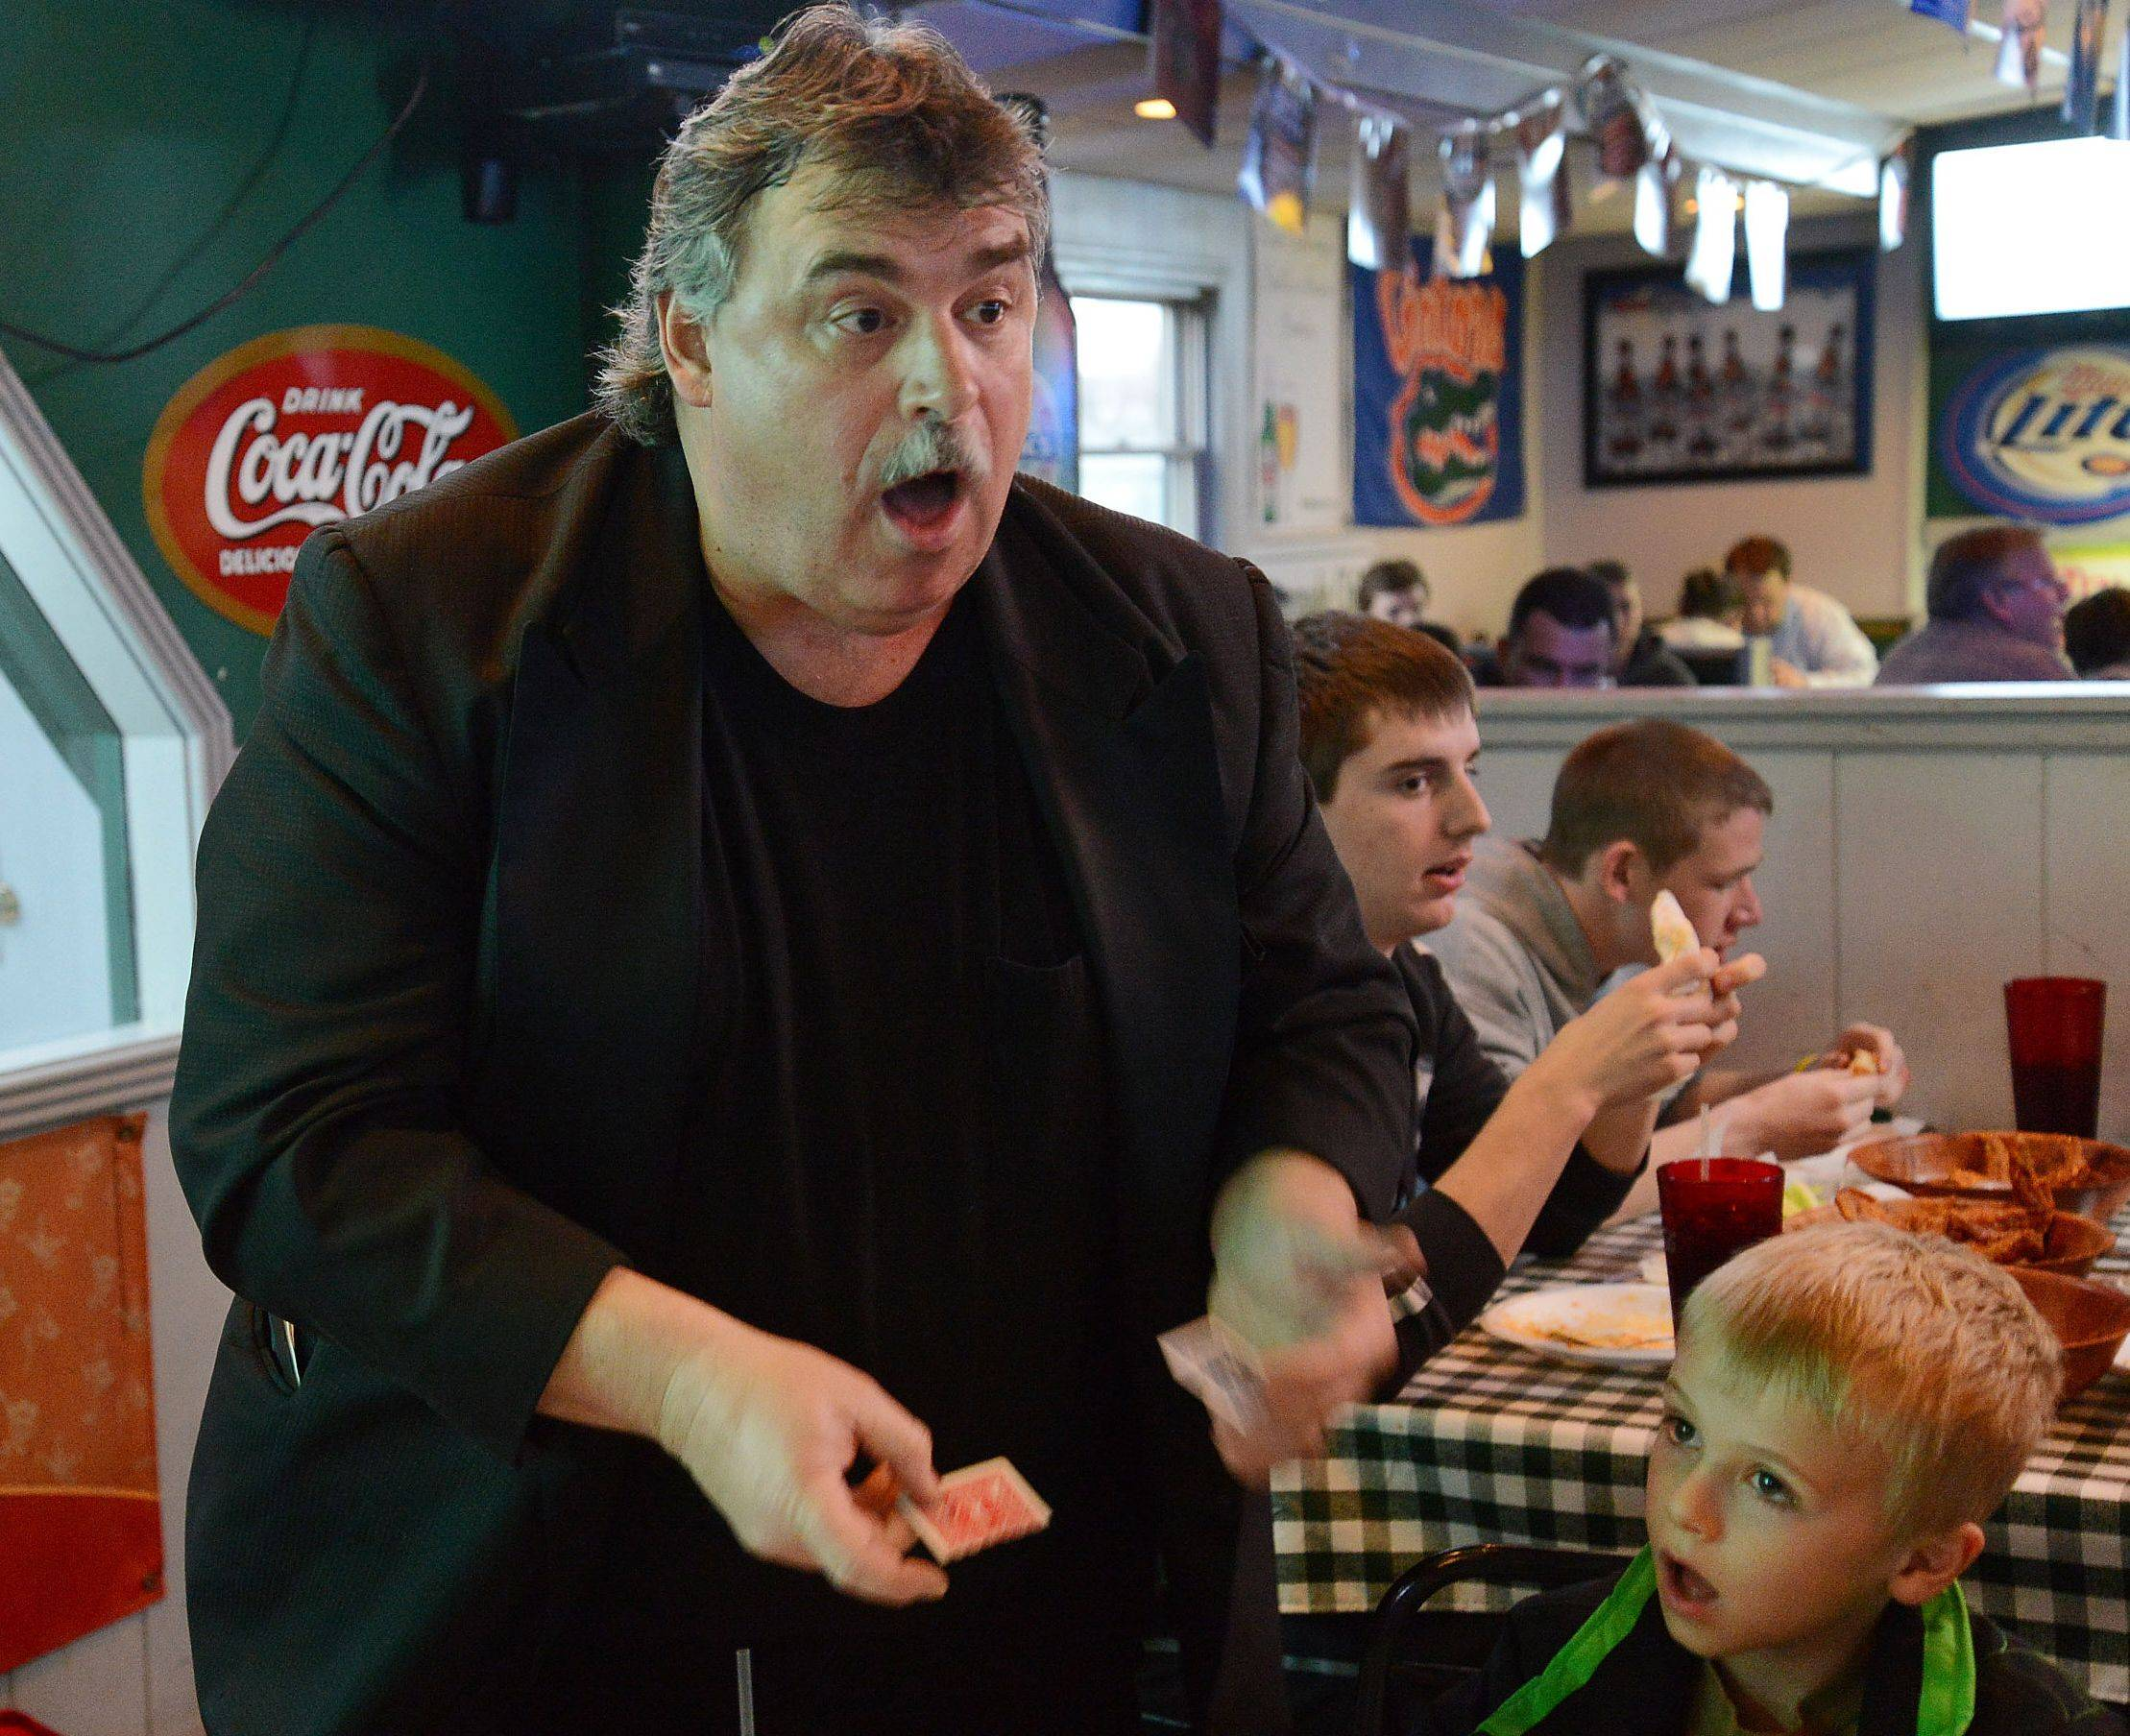 Magician Mark Doetsch especially likes performing magic for the kids at Gators in Palatine.